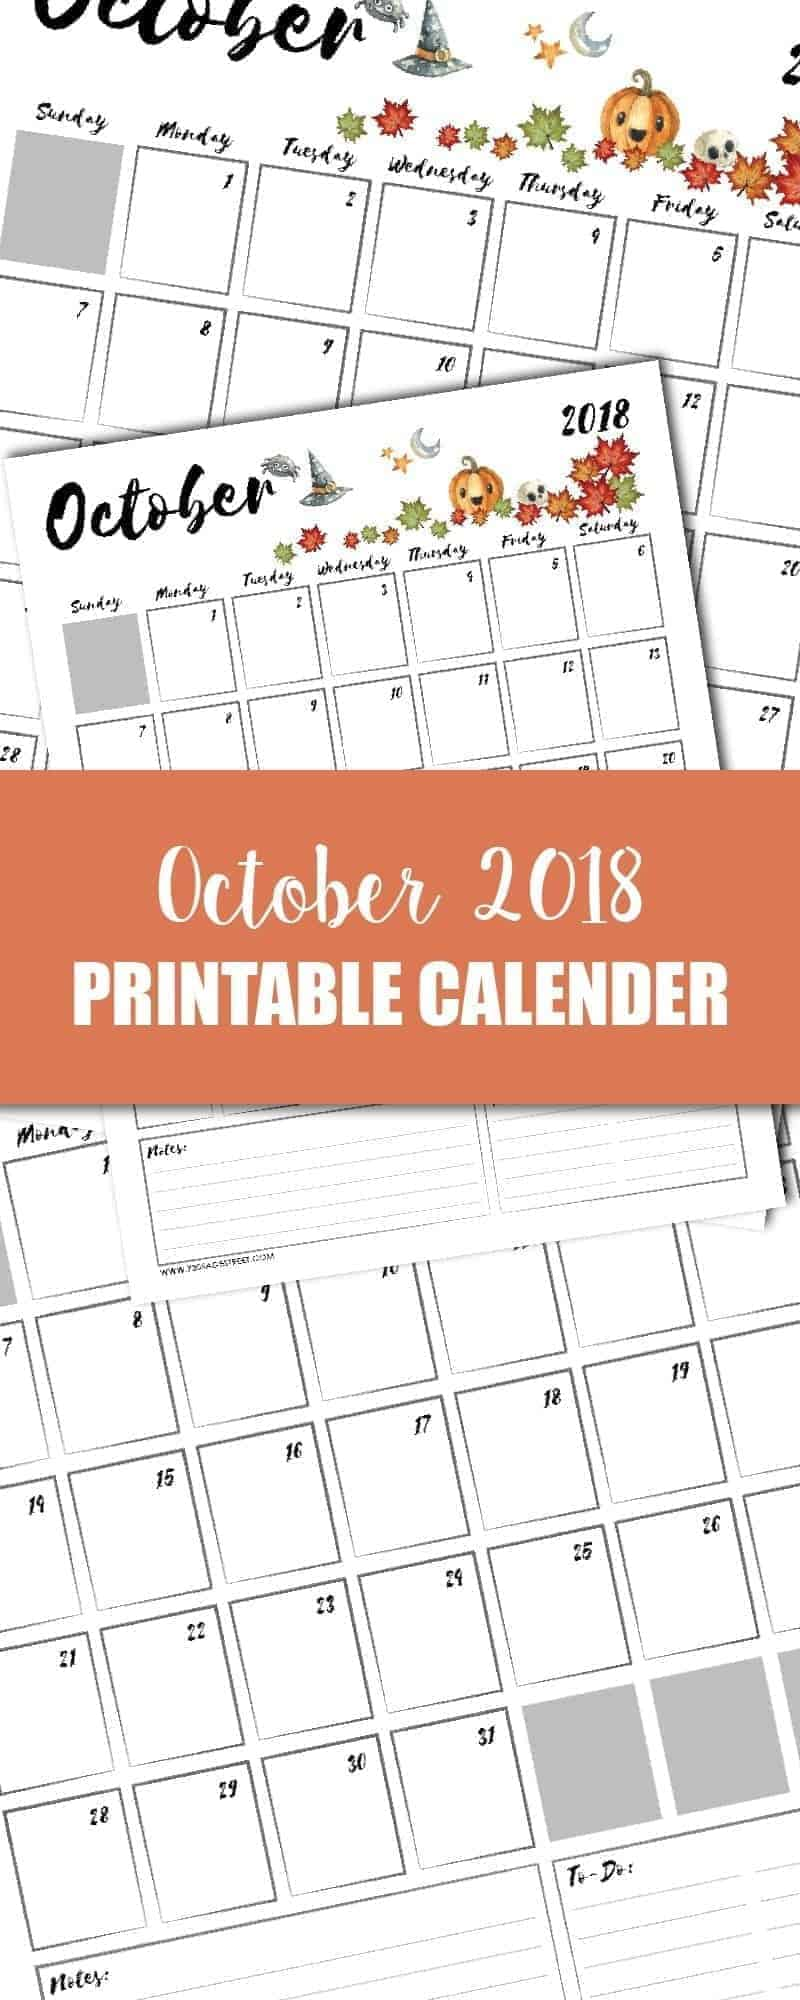 tall graphic showing a October 2018 printable calendar